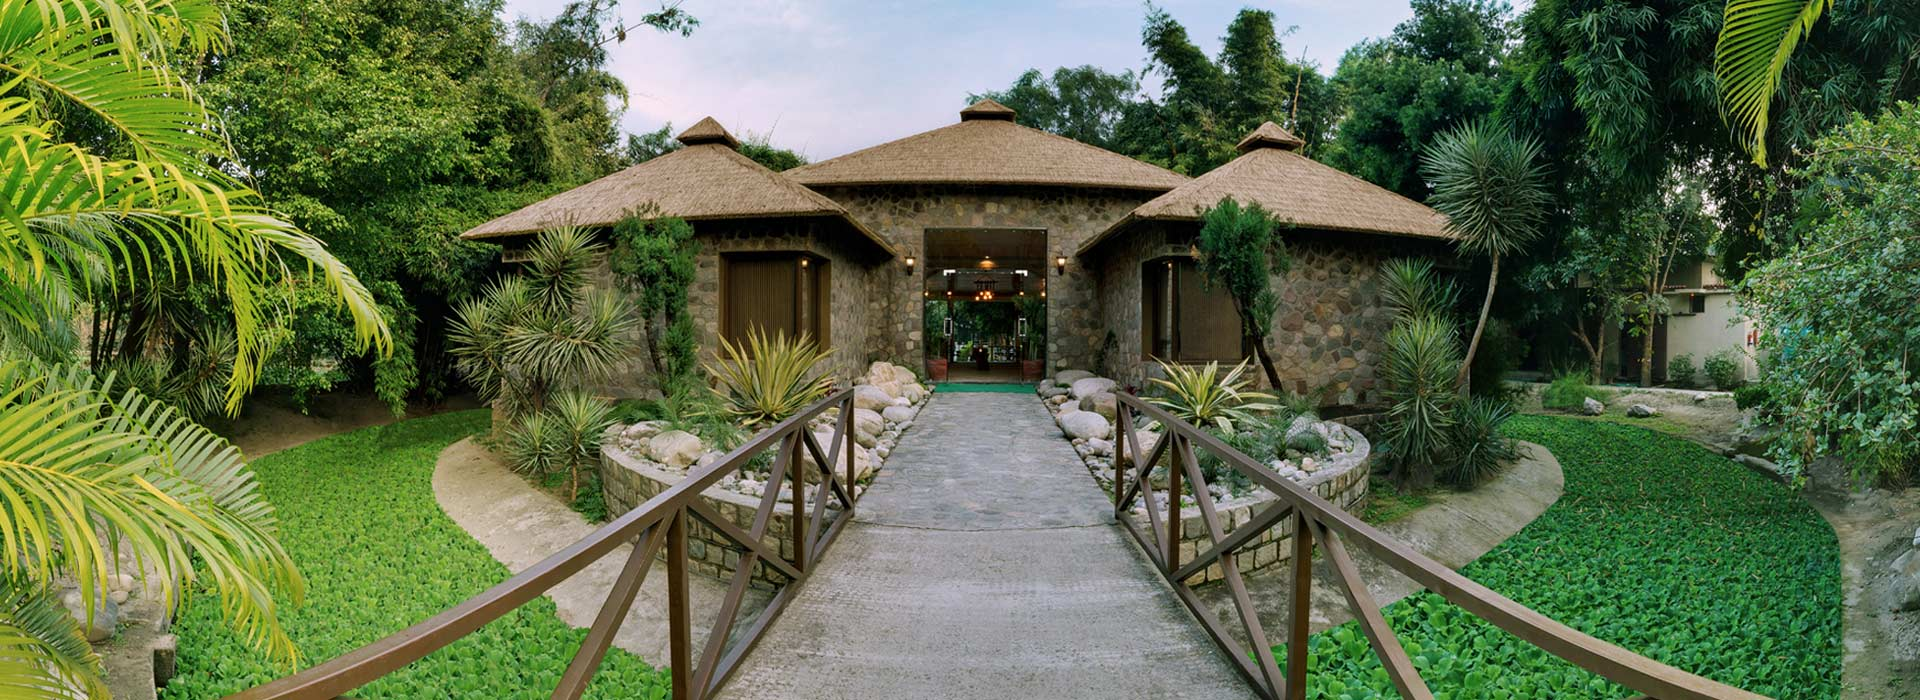 Tarangi Resort and Spa Corbett